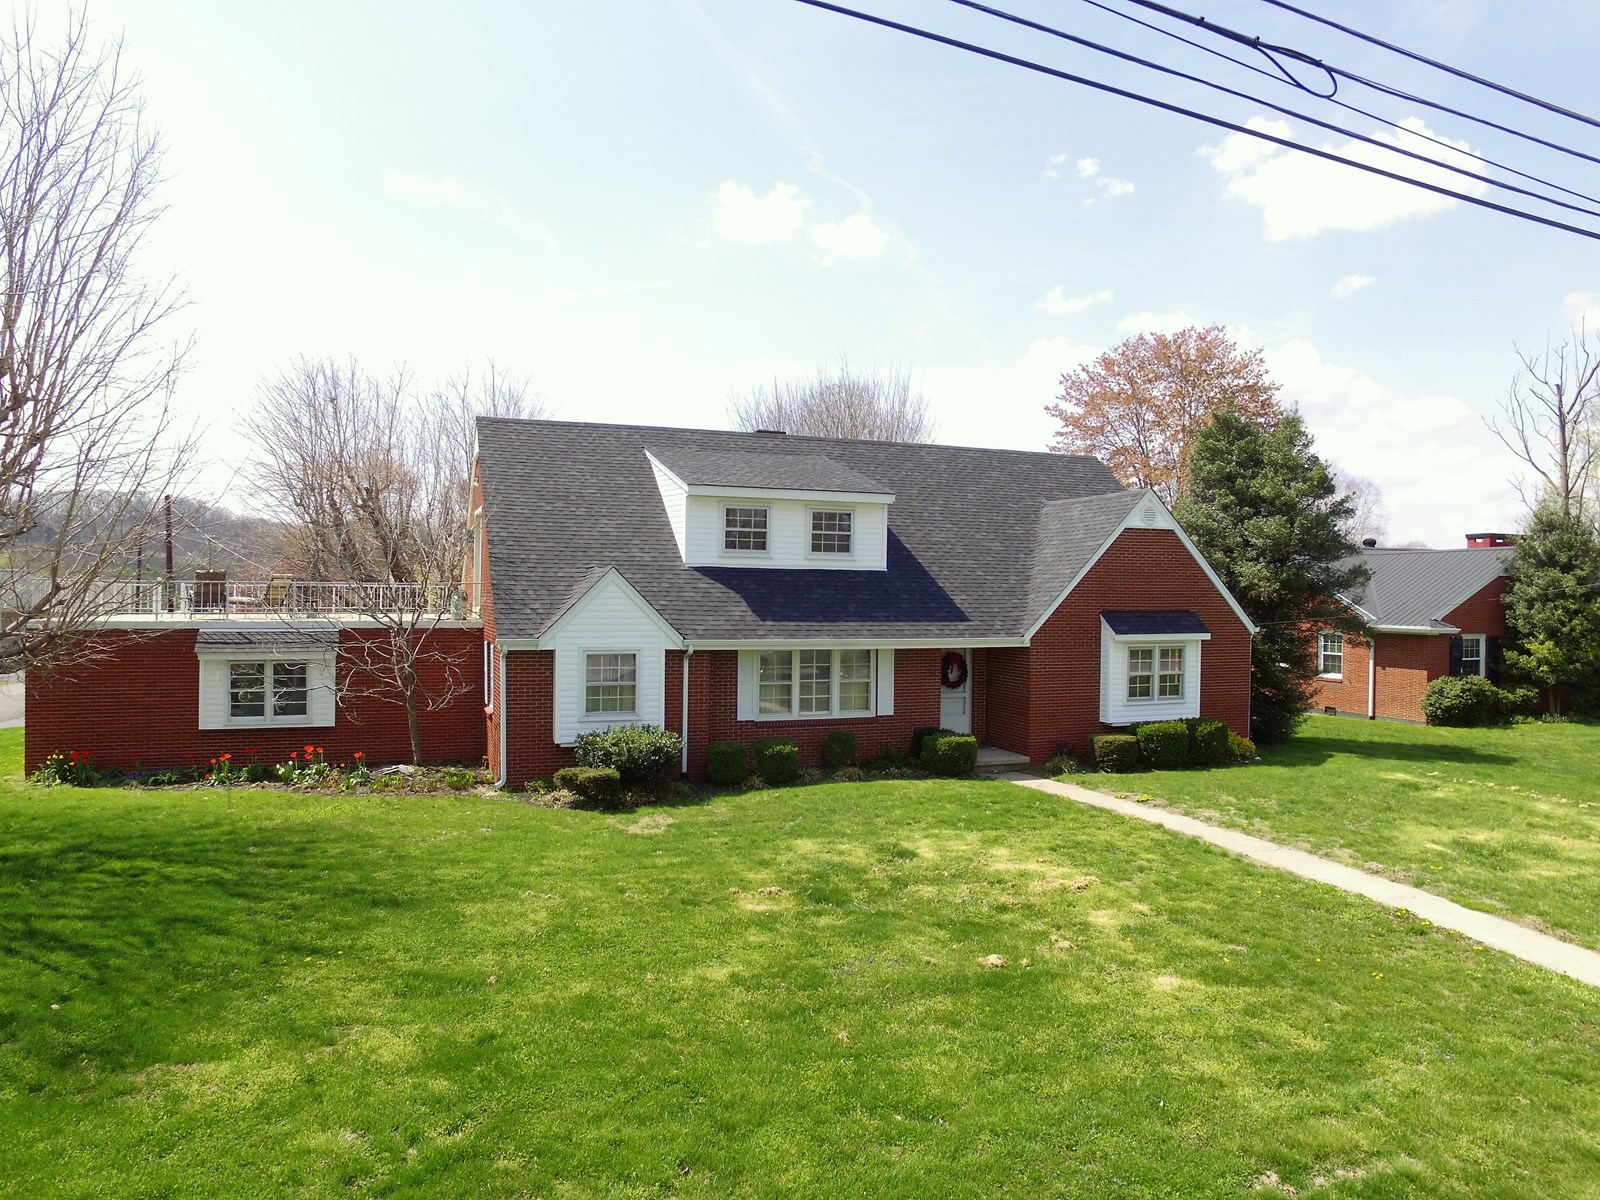 BRICK HOME IN TOWN-GREAT LOCATION-2,700 SQ.FT.-LIBERTY, KY.